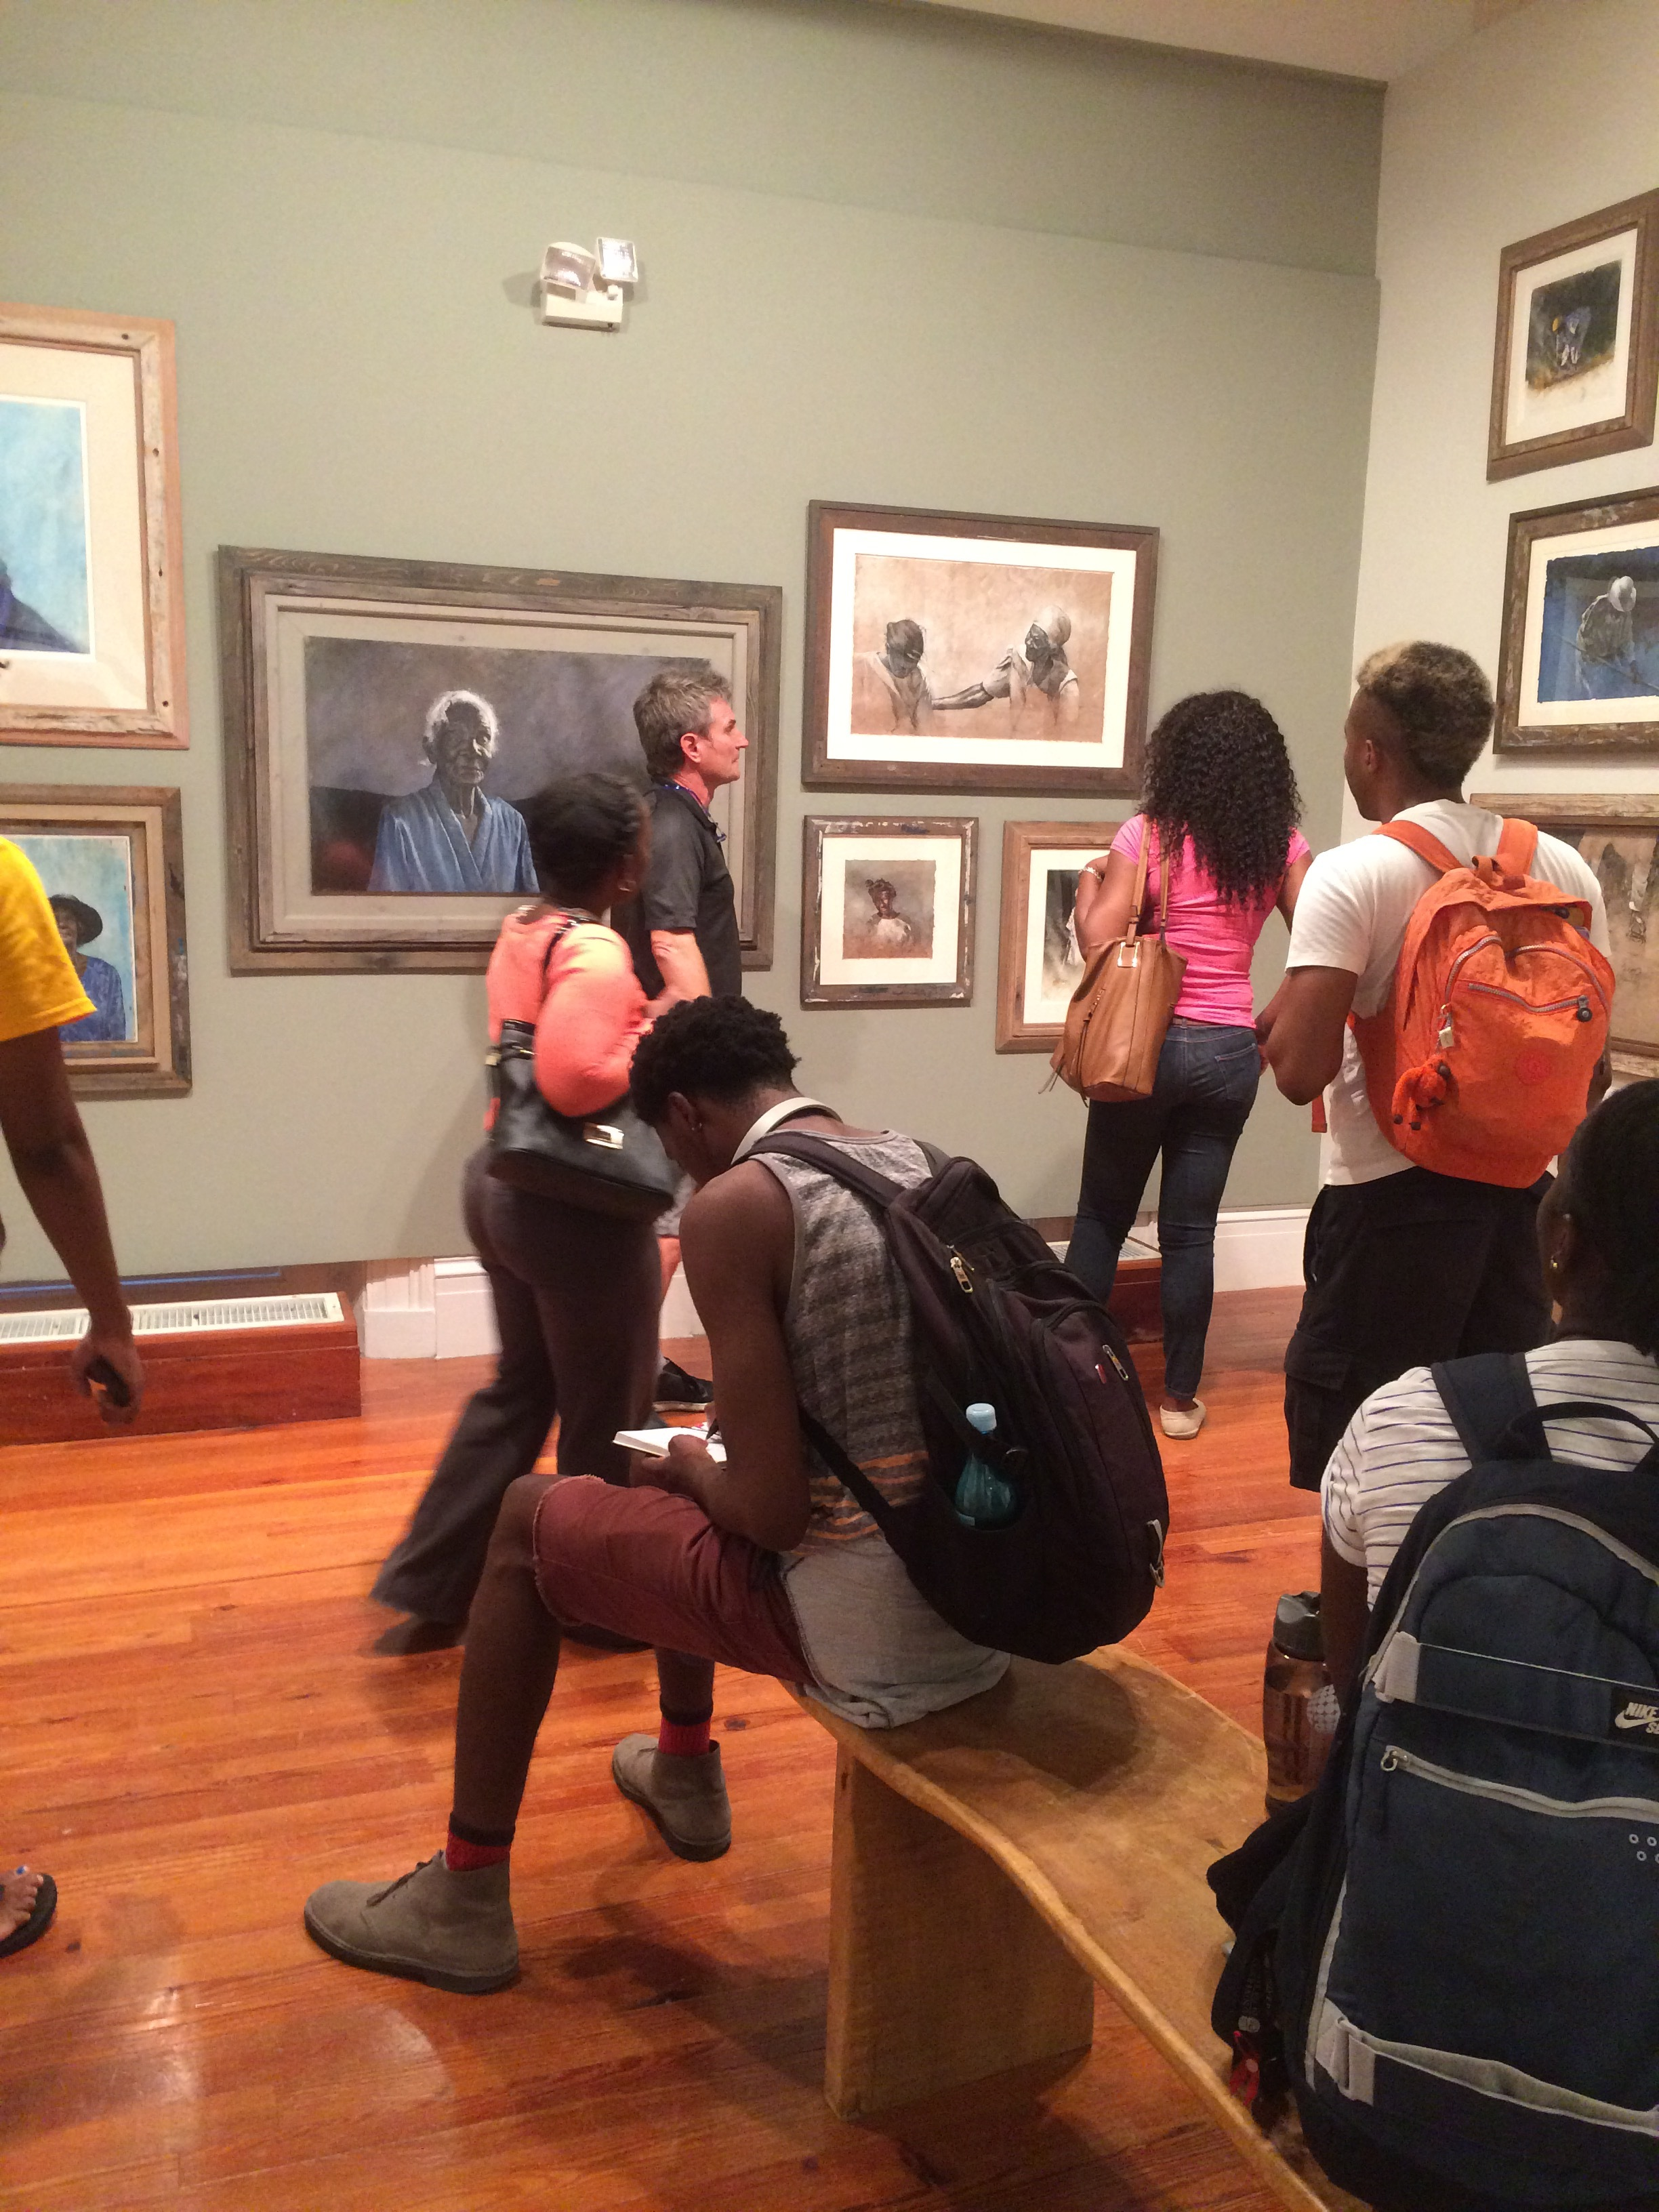 """University of The Bahamas students visit Thierry Lamare's """"Love, Loss and Life"""" on view at the National Art Gallery of The Bahamas and receive a guided tour by the artist. Students ask questions and take notes of the images on view."""